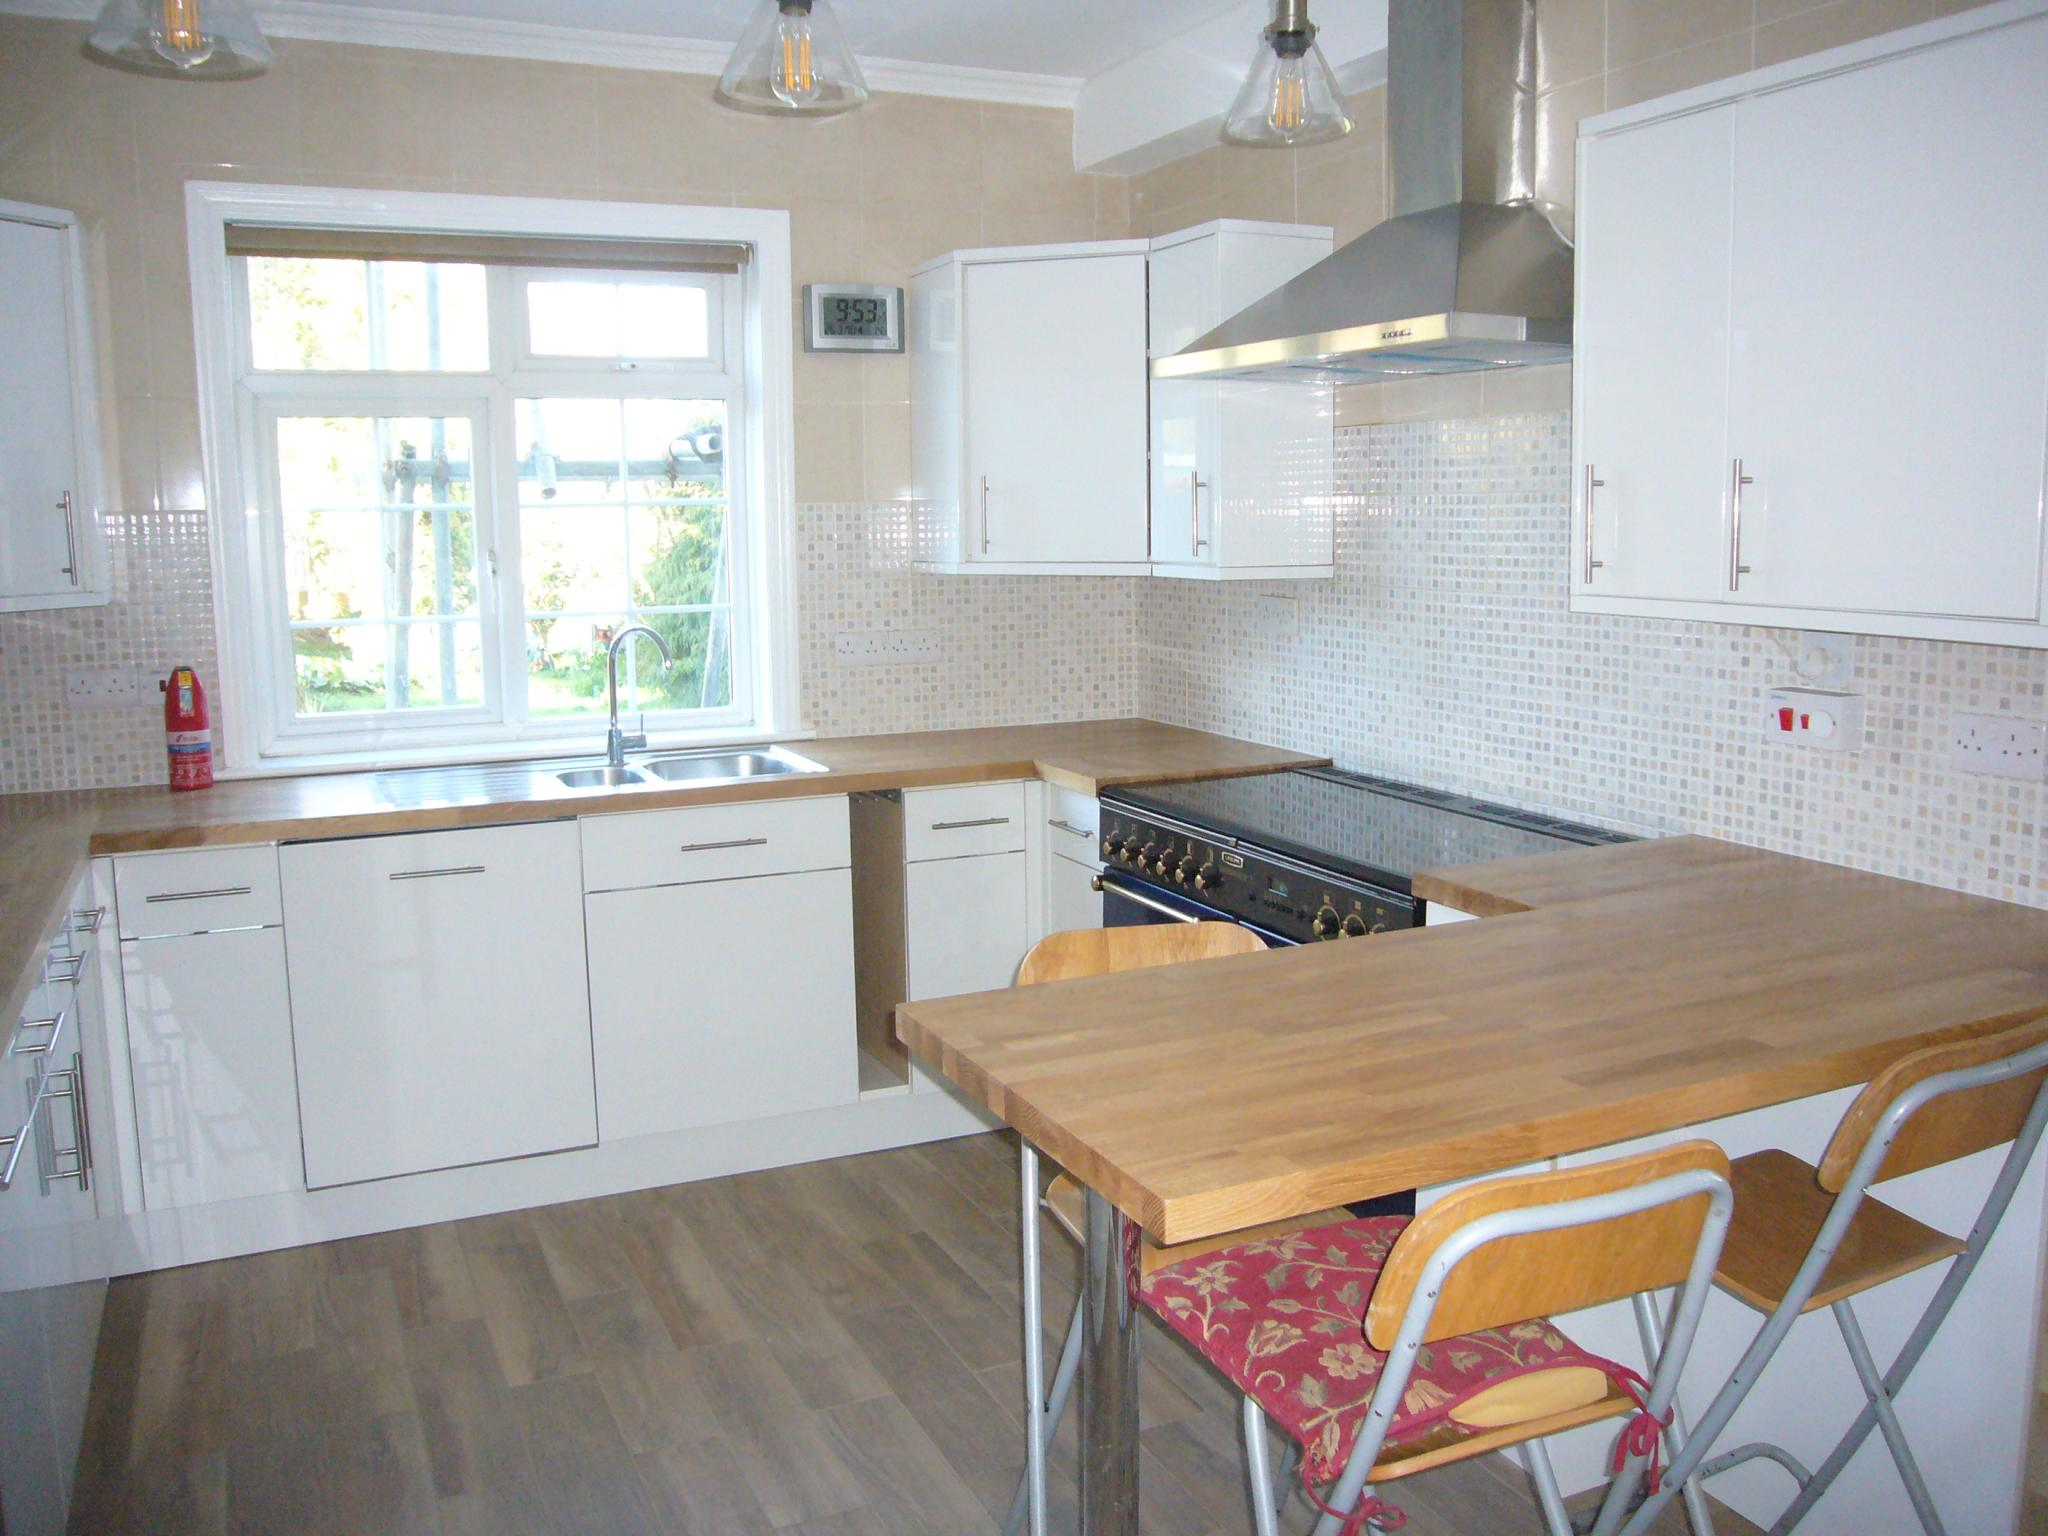 4 bedroom detached house Under Offer in Cheam - Photograph 6.